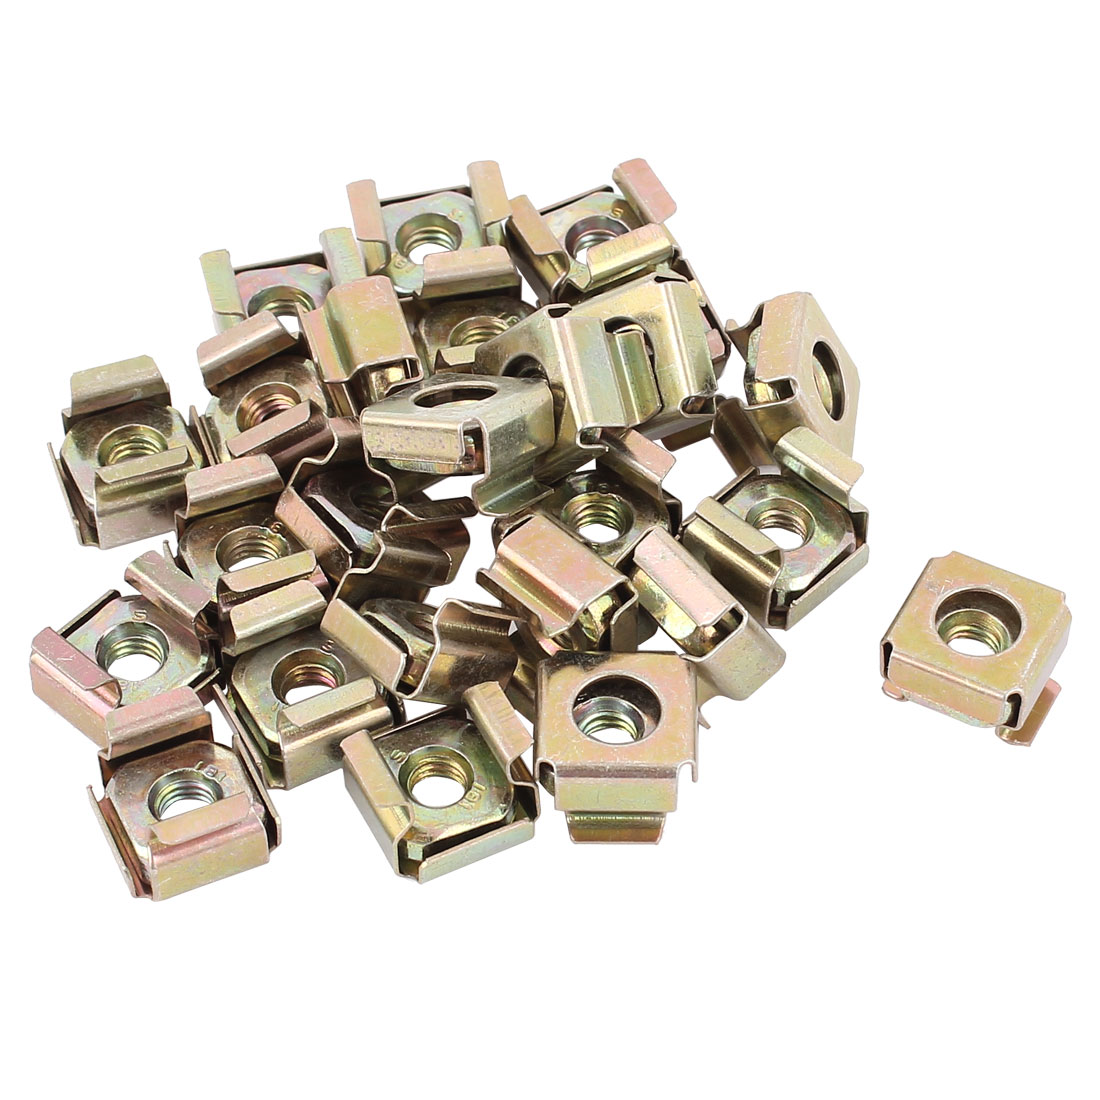 5mm Thread Dia Server Shelves Cabinets Zinc Plated Cage Nuts Screws 25Pcs